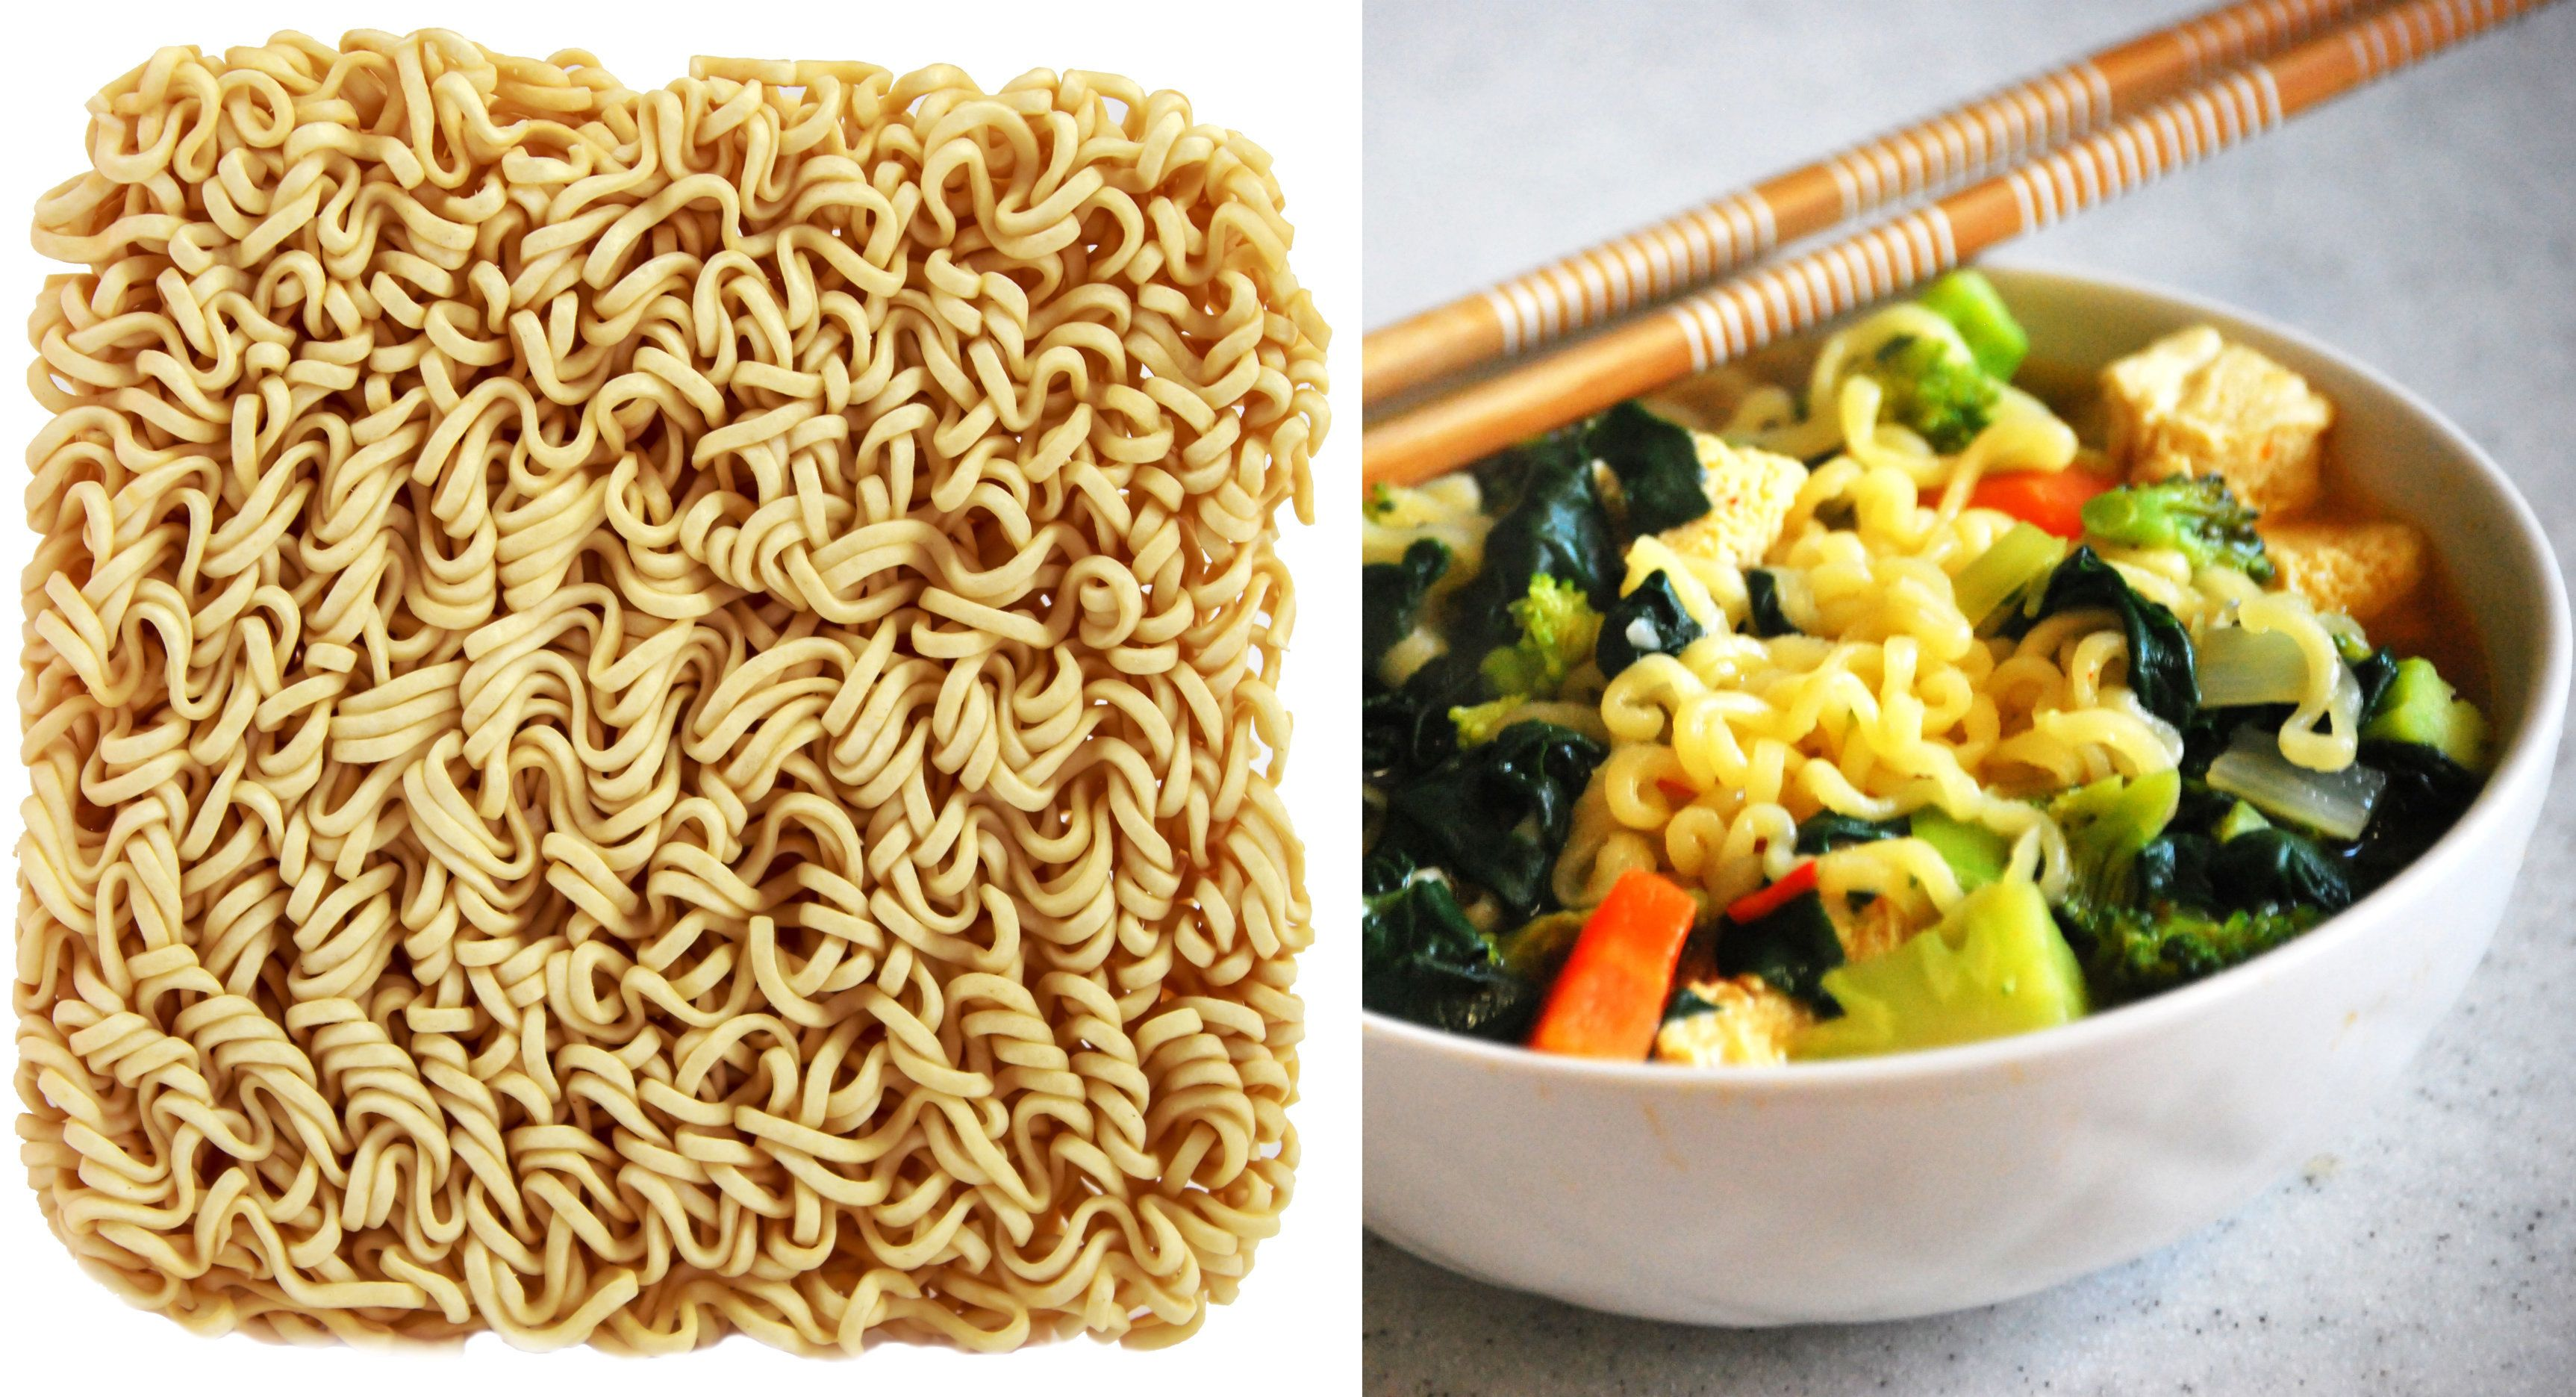 Ramyeon noodles